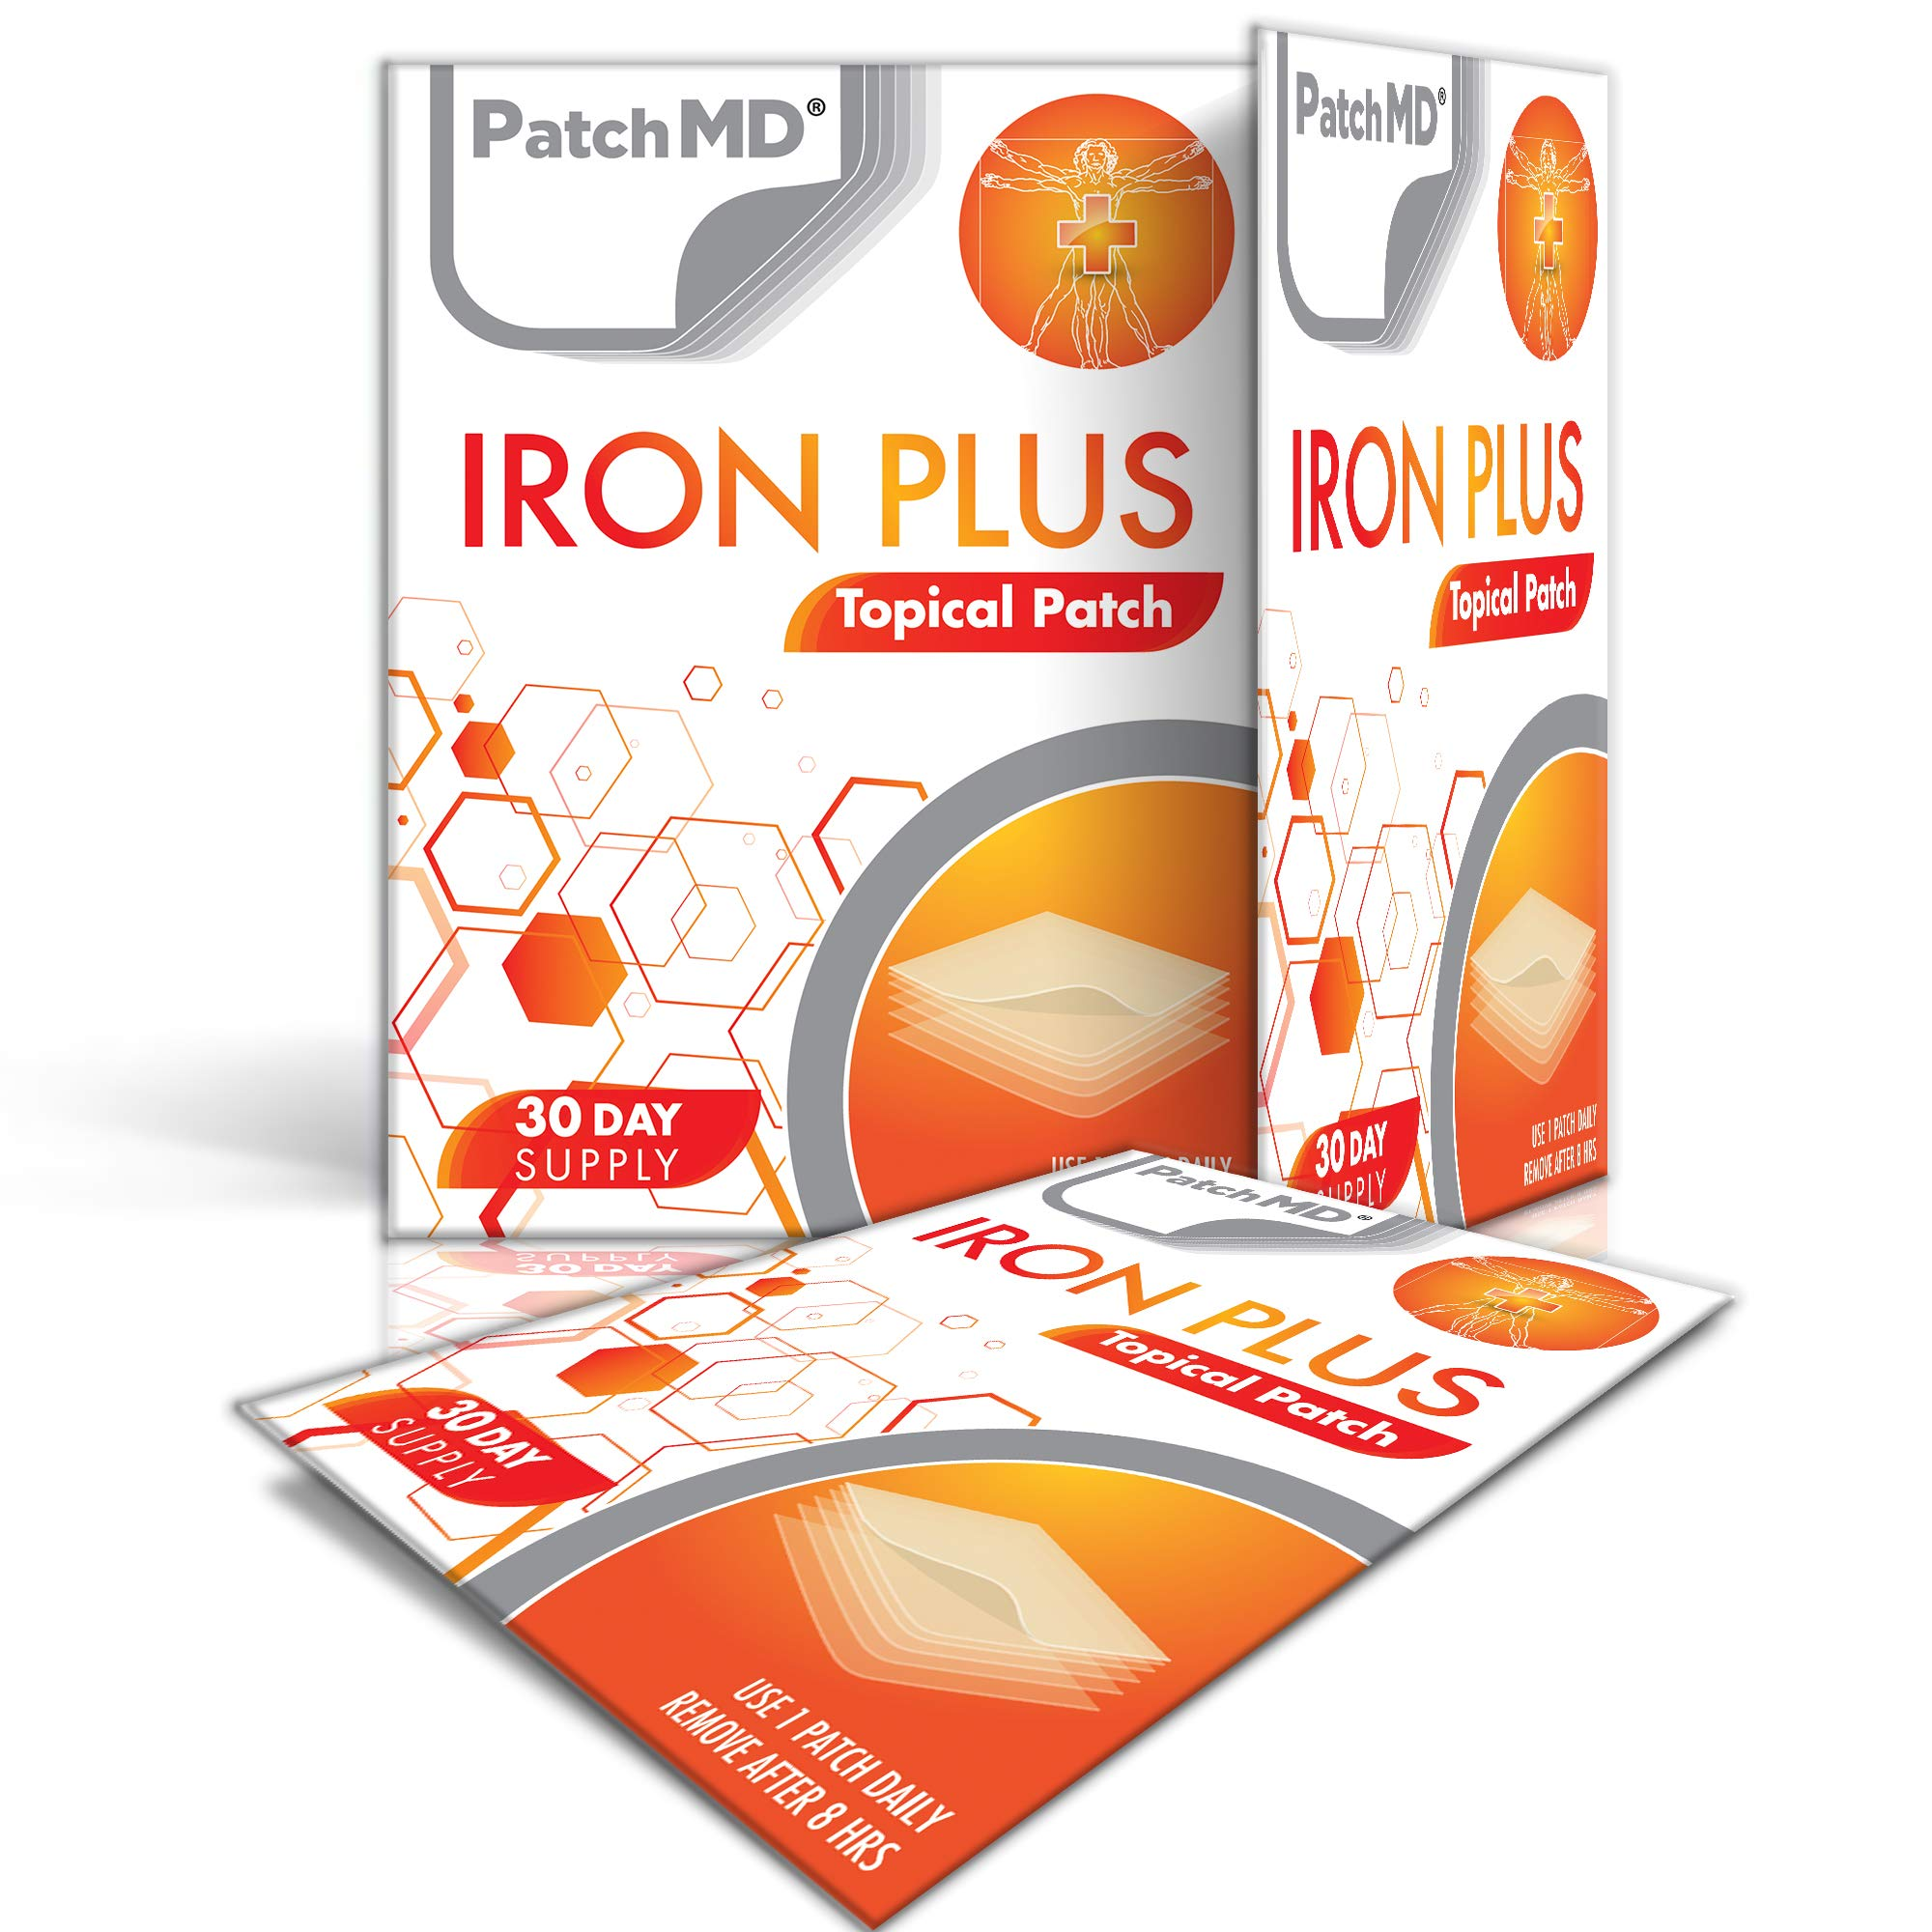 PatchMD - Iron Plus Topical Patch